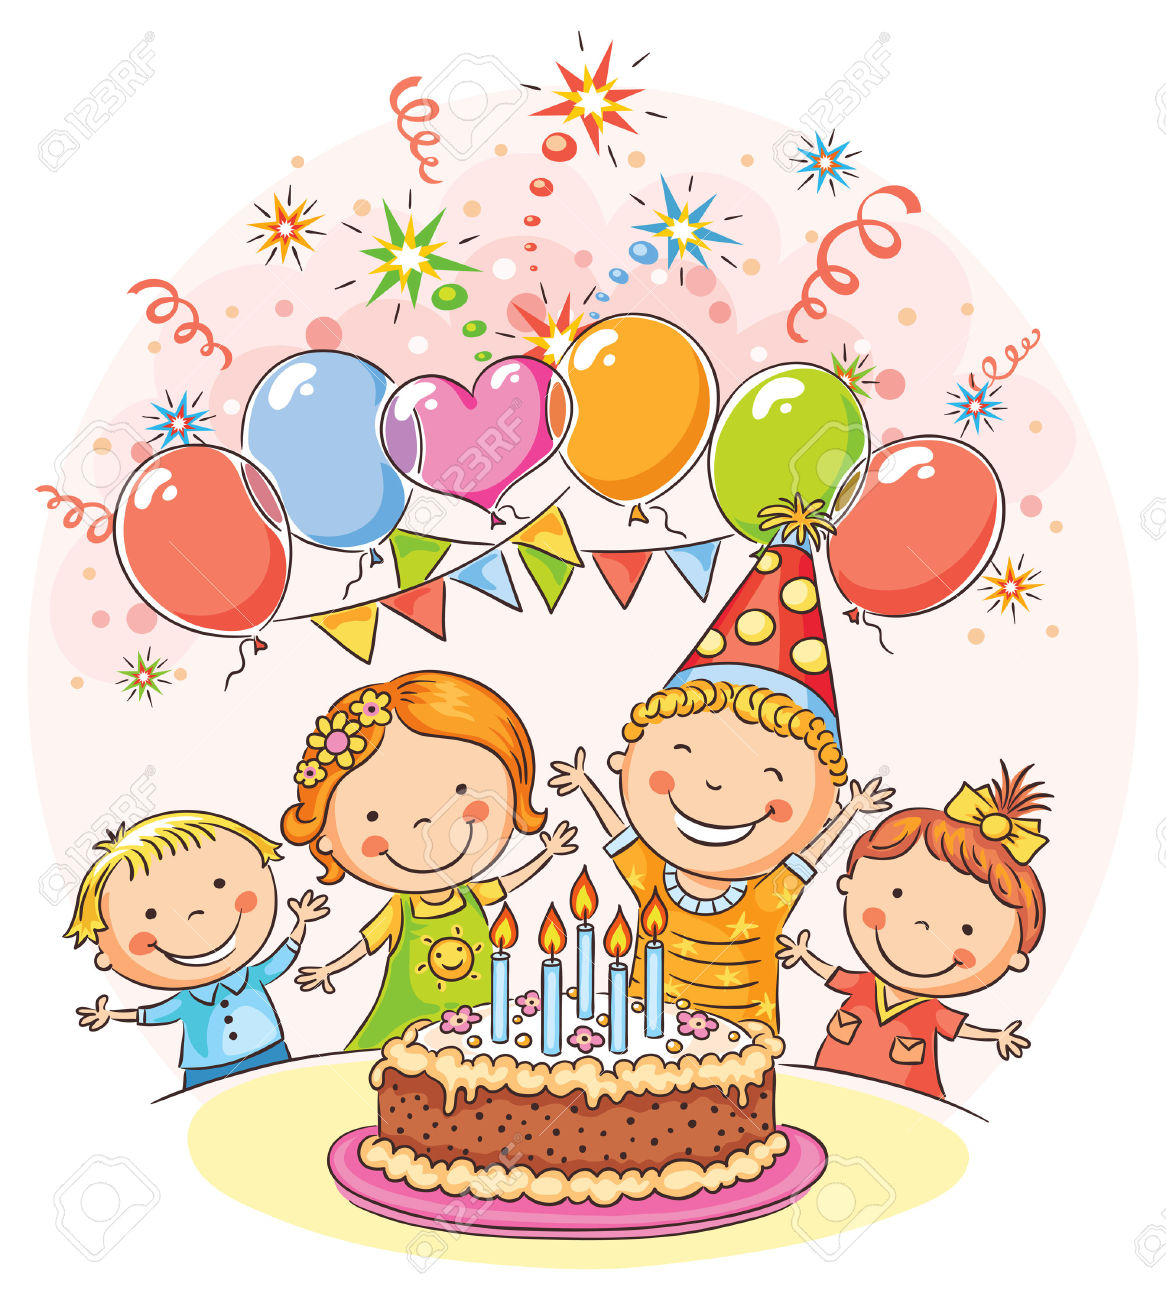 Birthday celebration clipart clipart free Free Birthday Party Clip Art, Download Free Clip Art, Free Clip Art ... clipart free